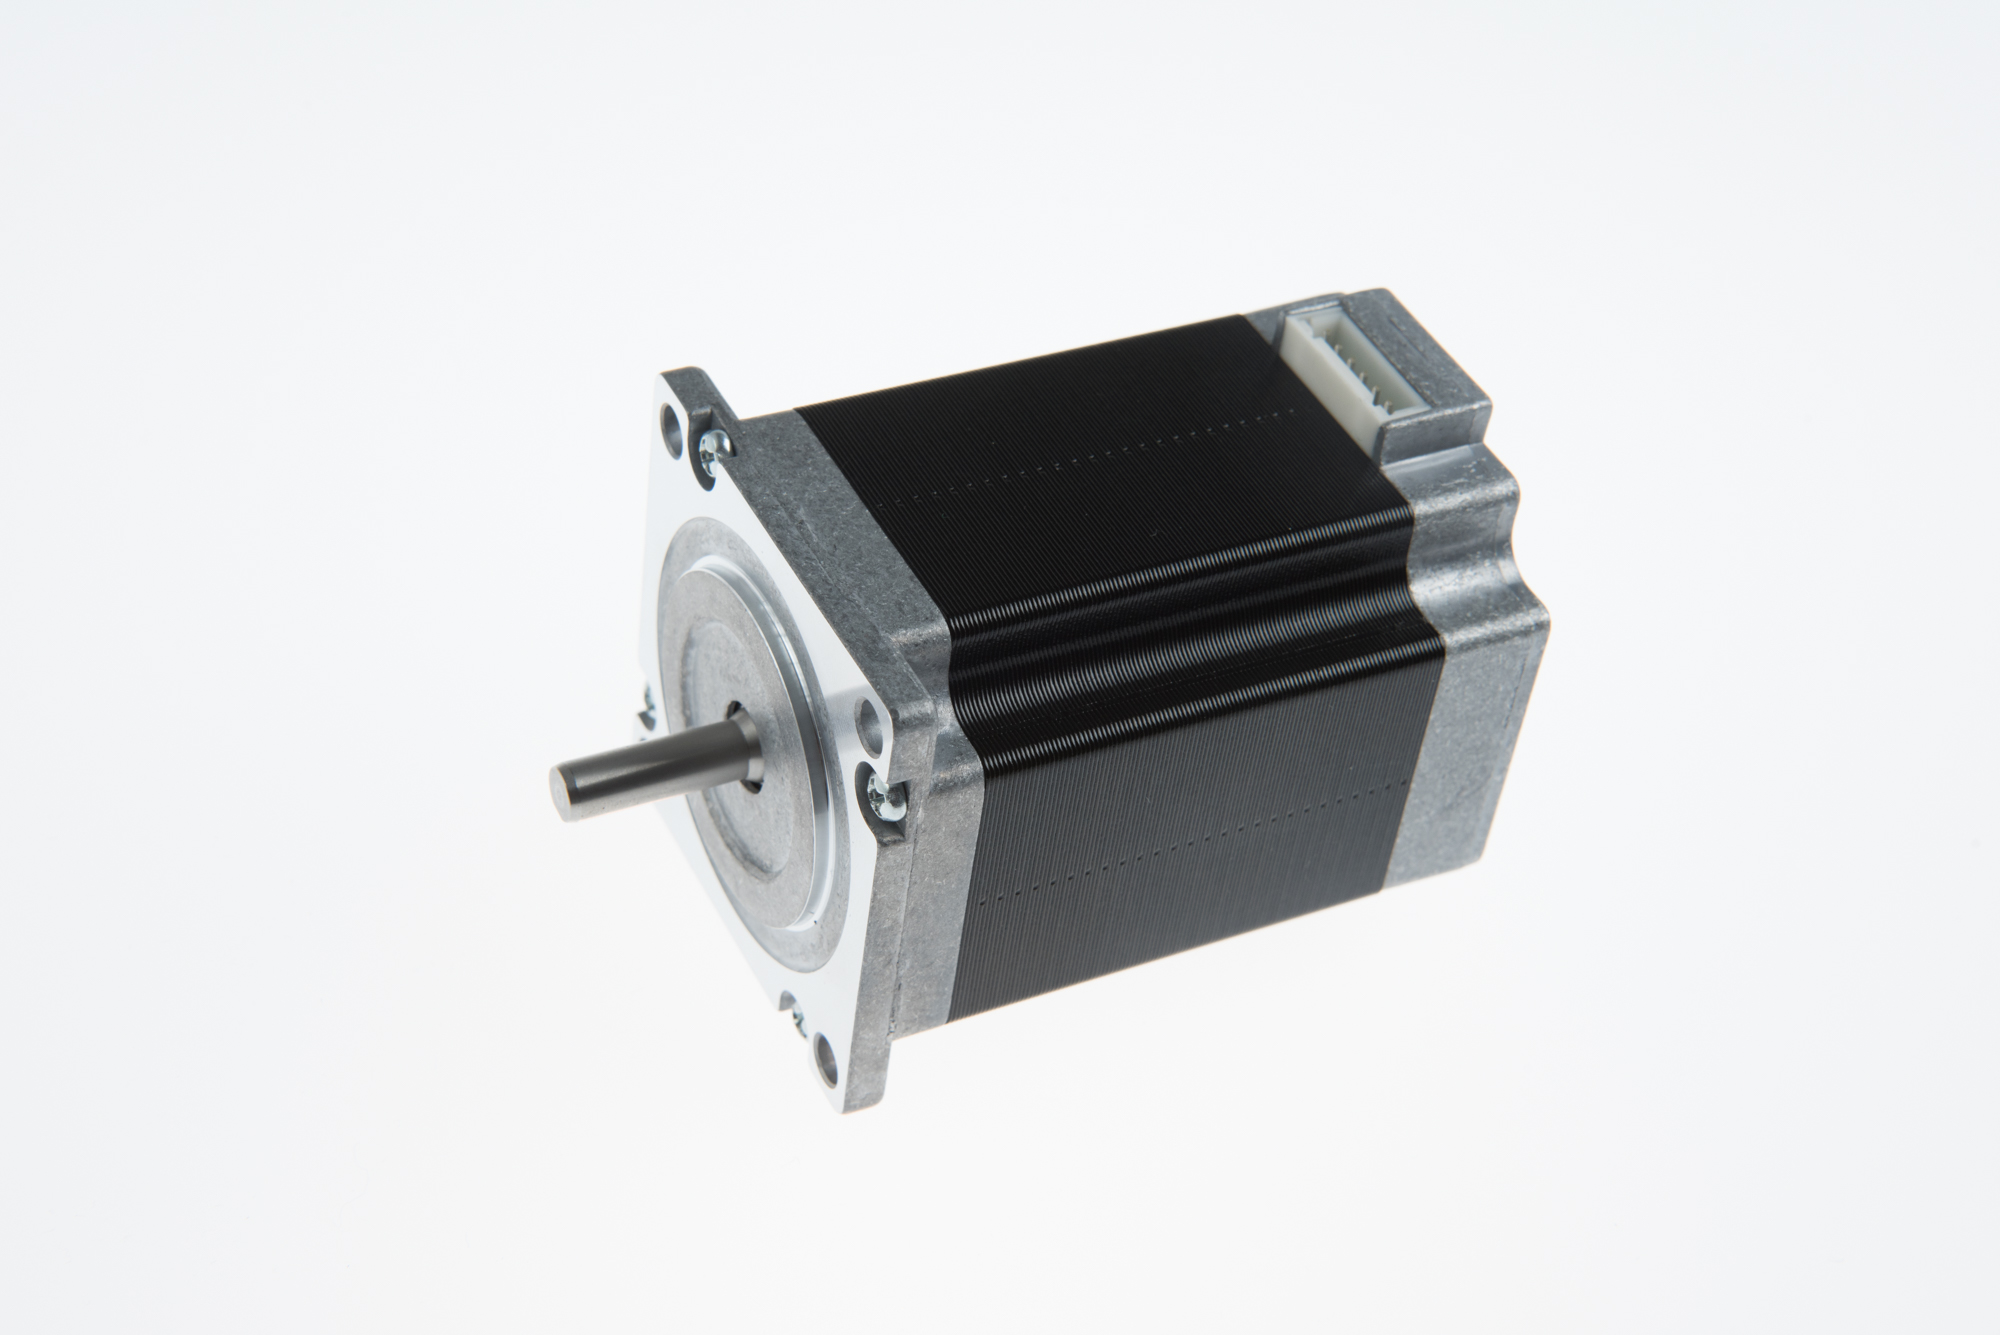 NEMA 23 step angel 0.9 degree connector type hybrid stepping motor  (76mm 1.8N.m) Featured Image